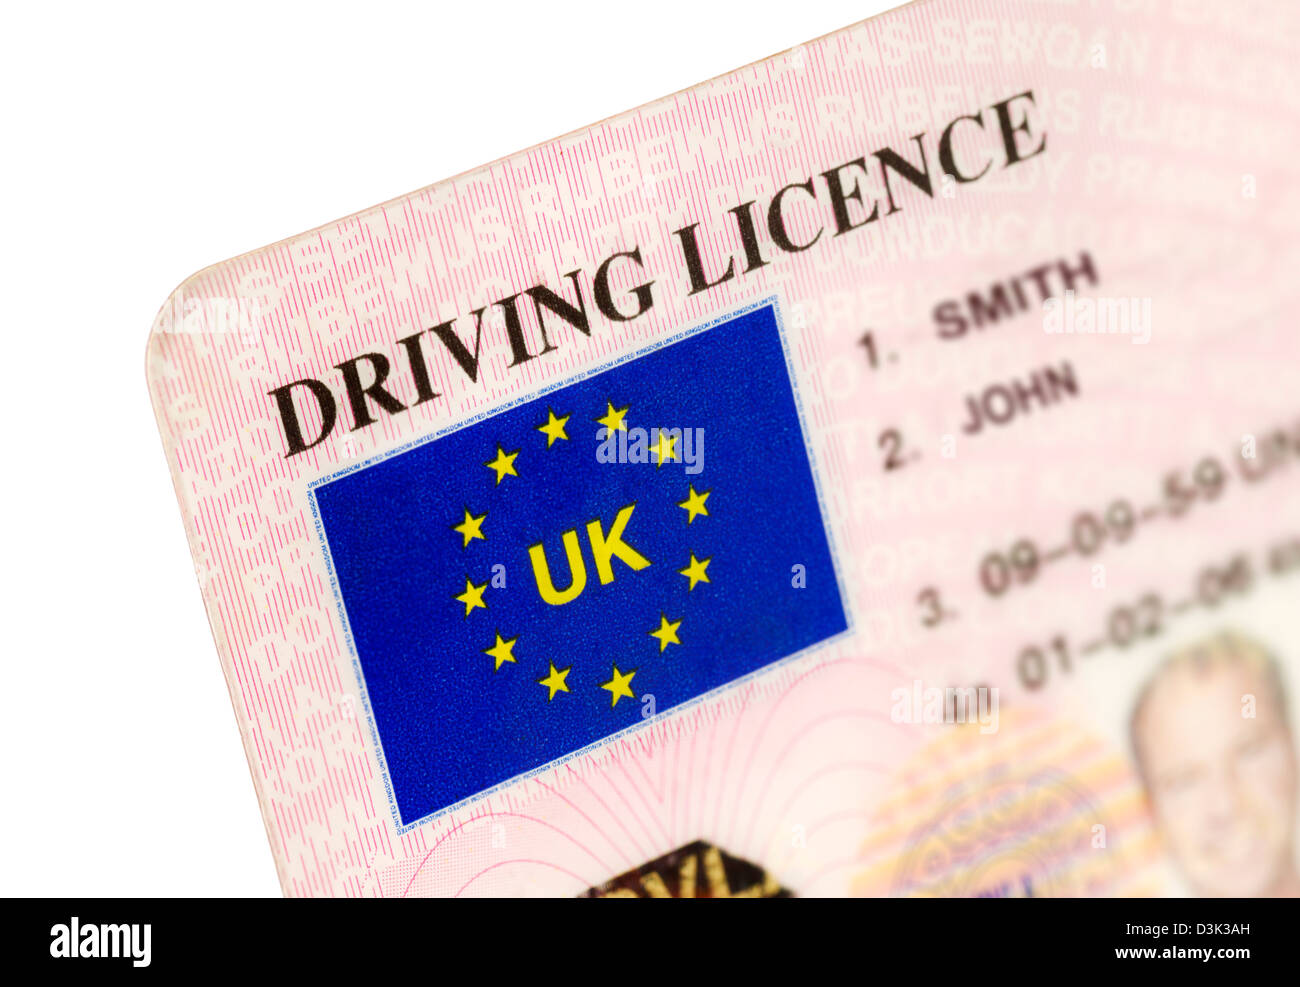 - Driving Alamy 53894809 Photo A Uk License Stock